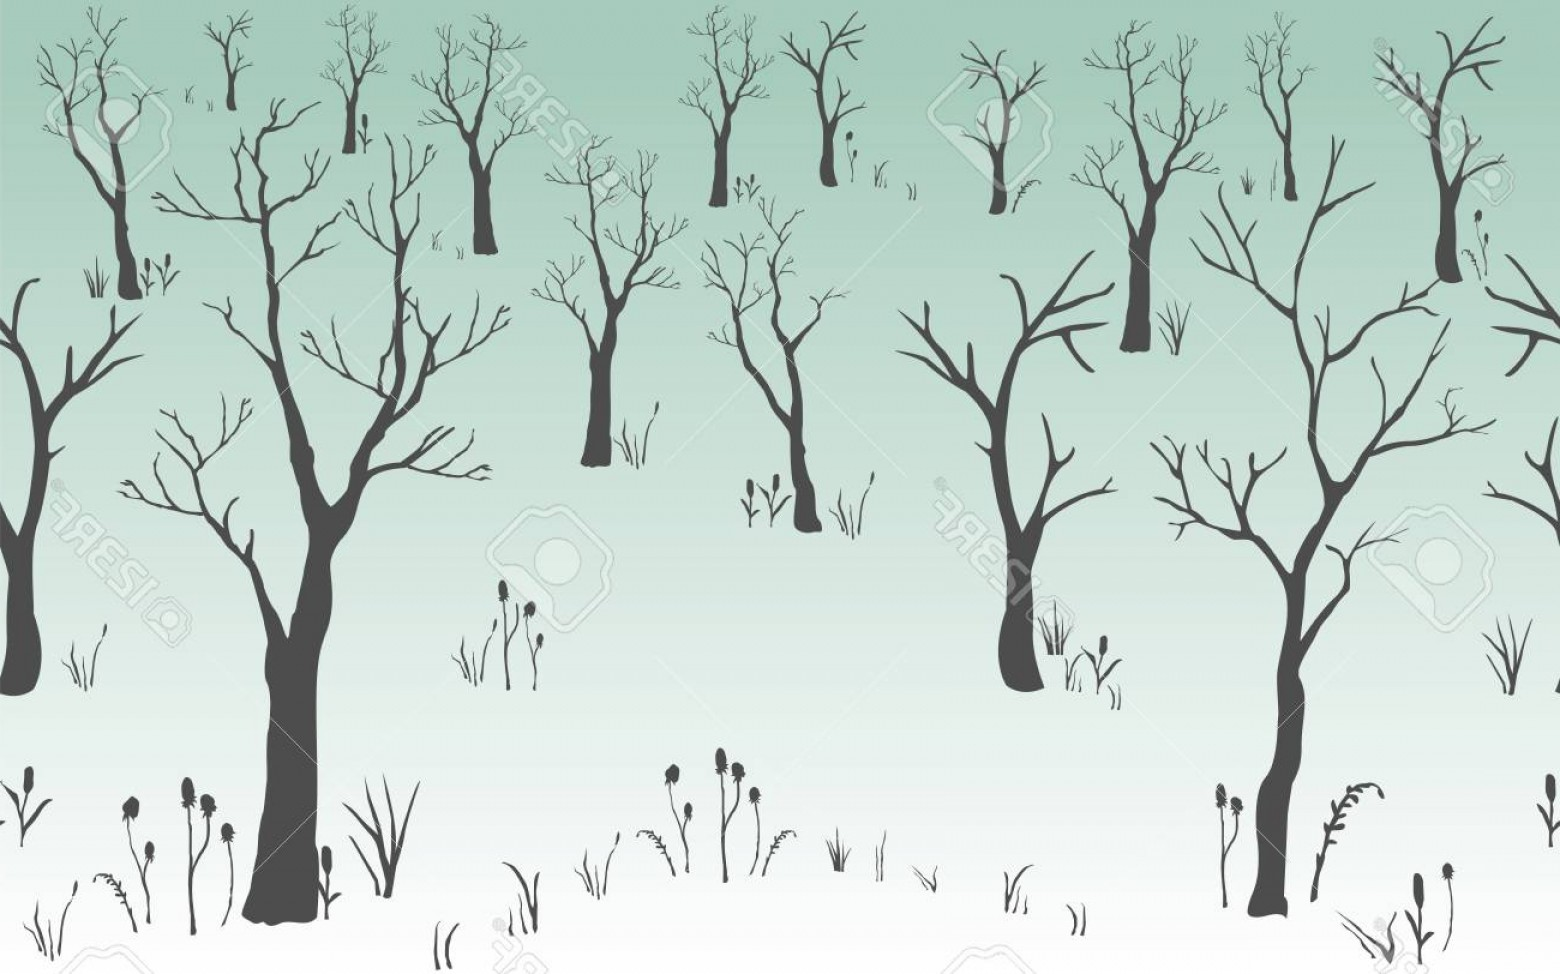 Continuous Tree Branch Vector Image: Photostock Illustration Trees With No Leaves Continuous Pattern Partly Seamless Vector Illustration